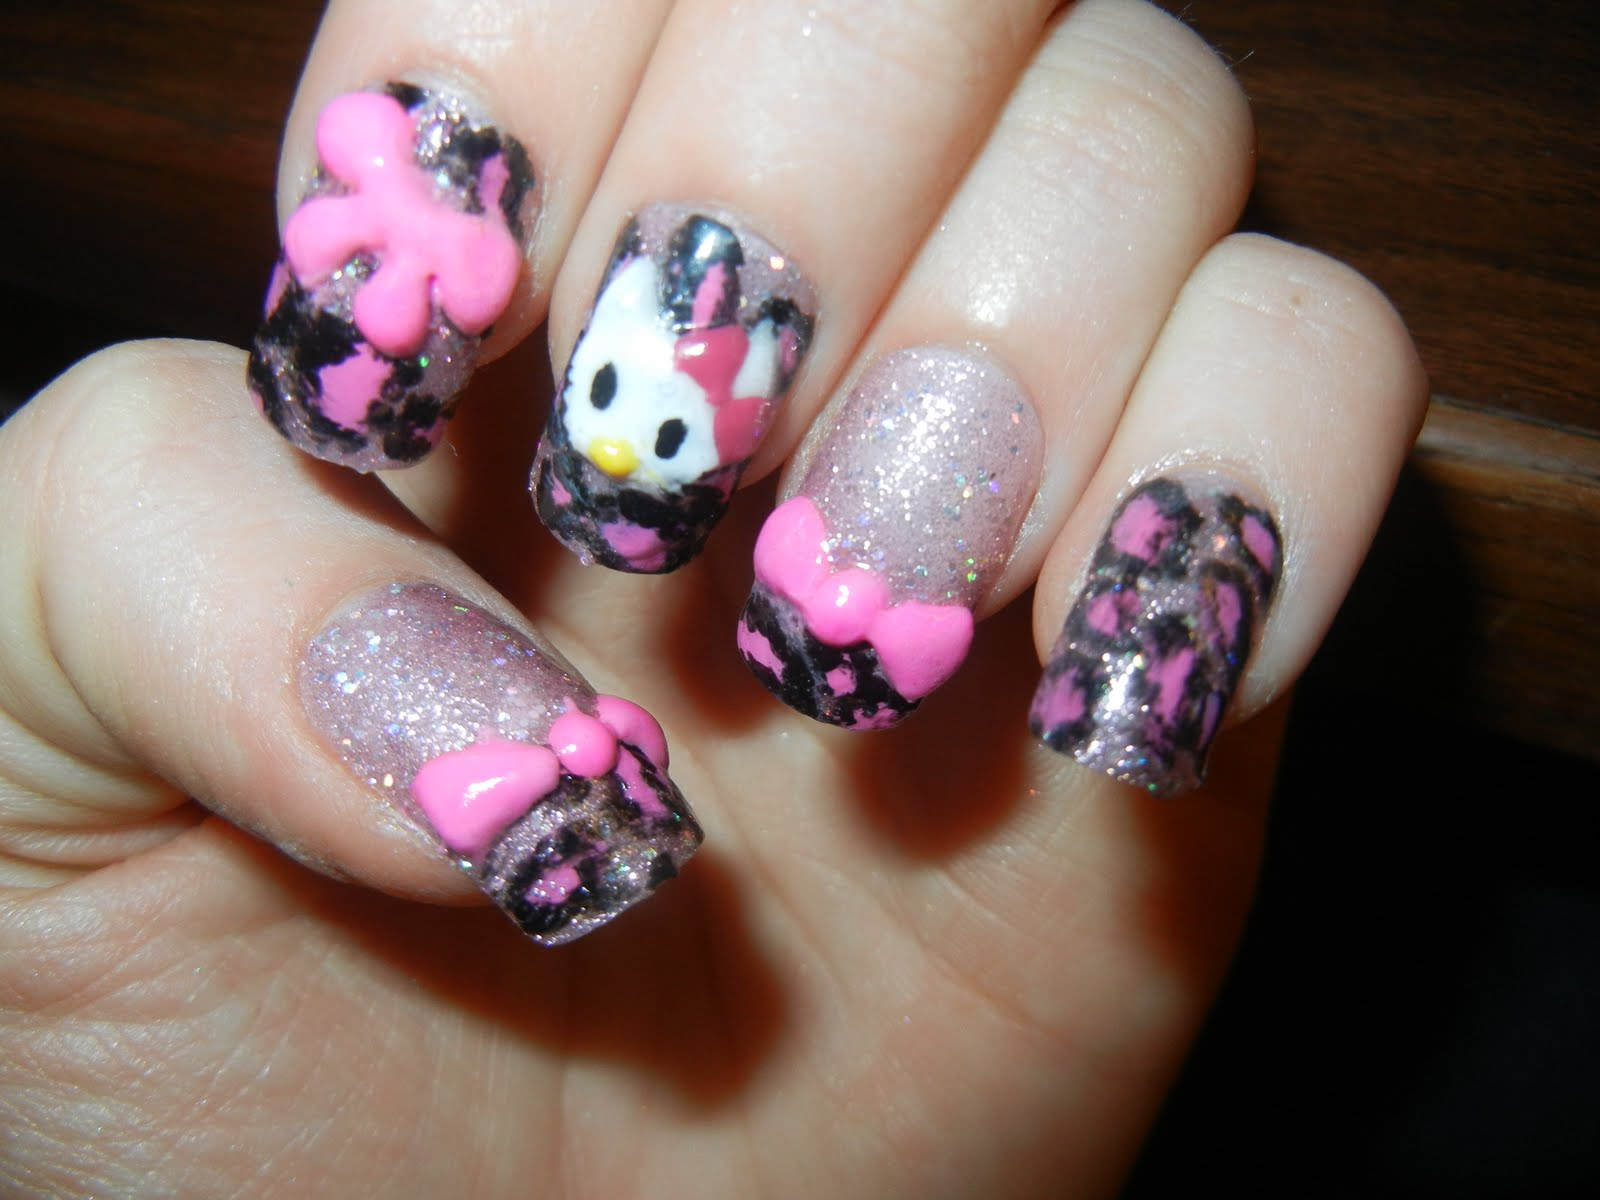 new hello kitty nails 3d bows and hello kitty face over pink glittery    Hello Kitty Nails With Bow